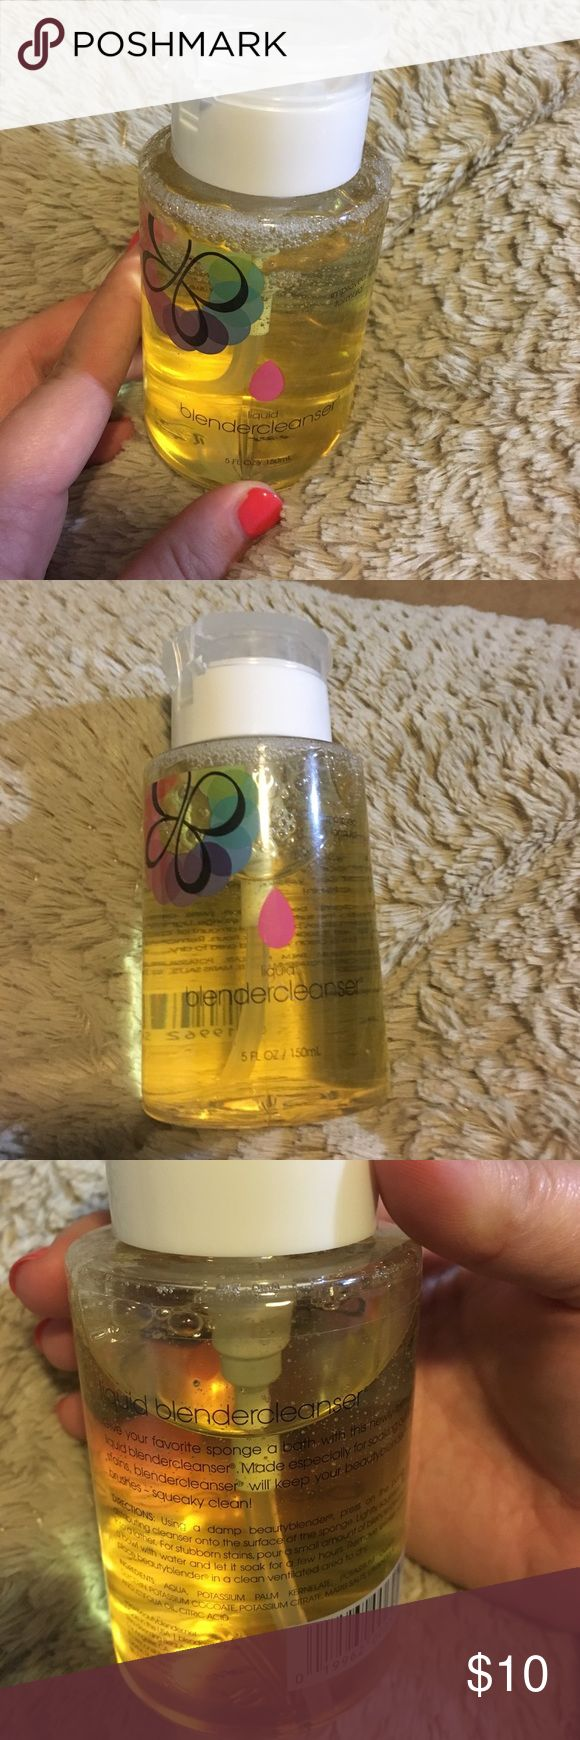 Liquid beauty blender cleanser Liquid beauty blender cleanser, very gently used..*a few times. Makeup